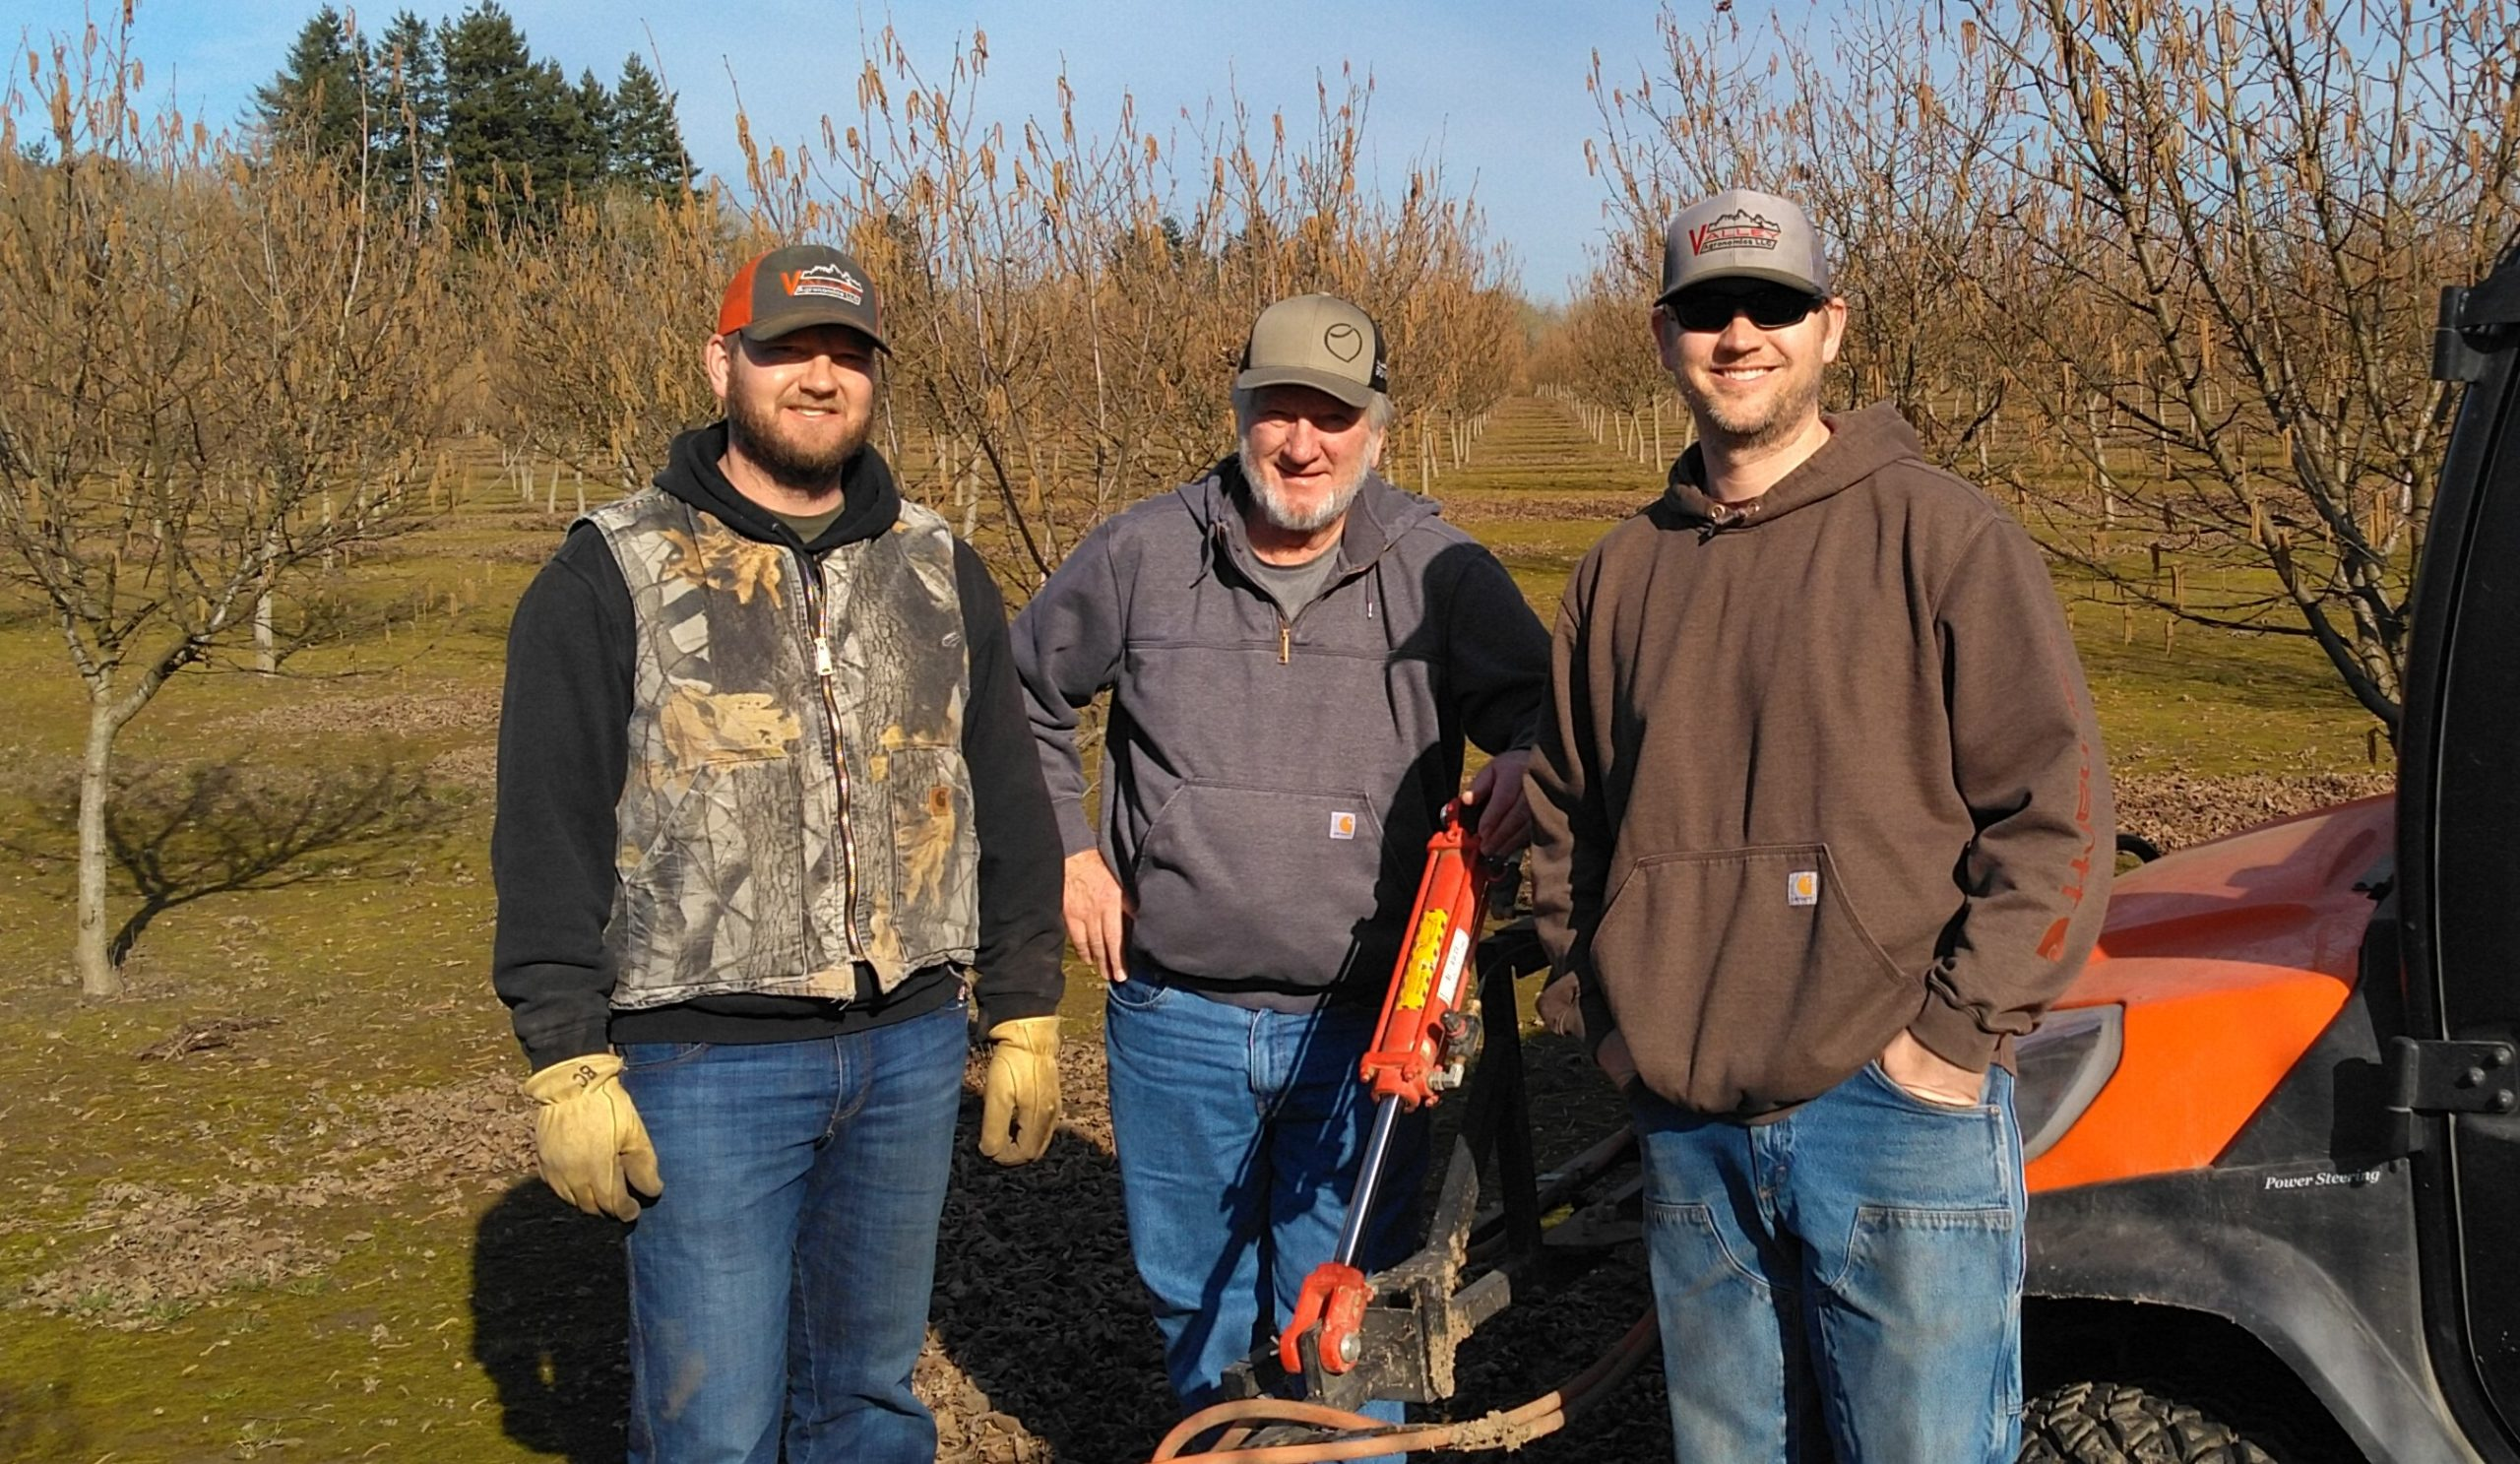 Brian, Gary, and Jeff of Cruickshank Farms